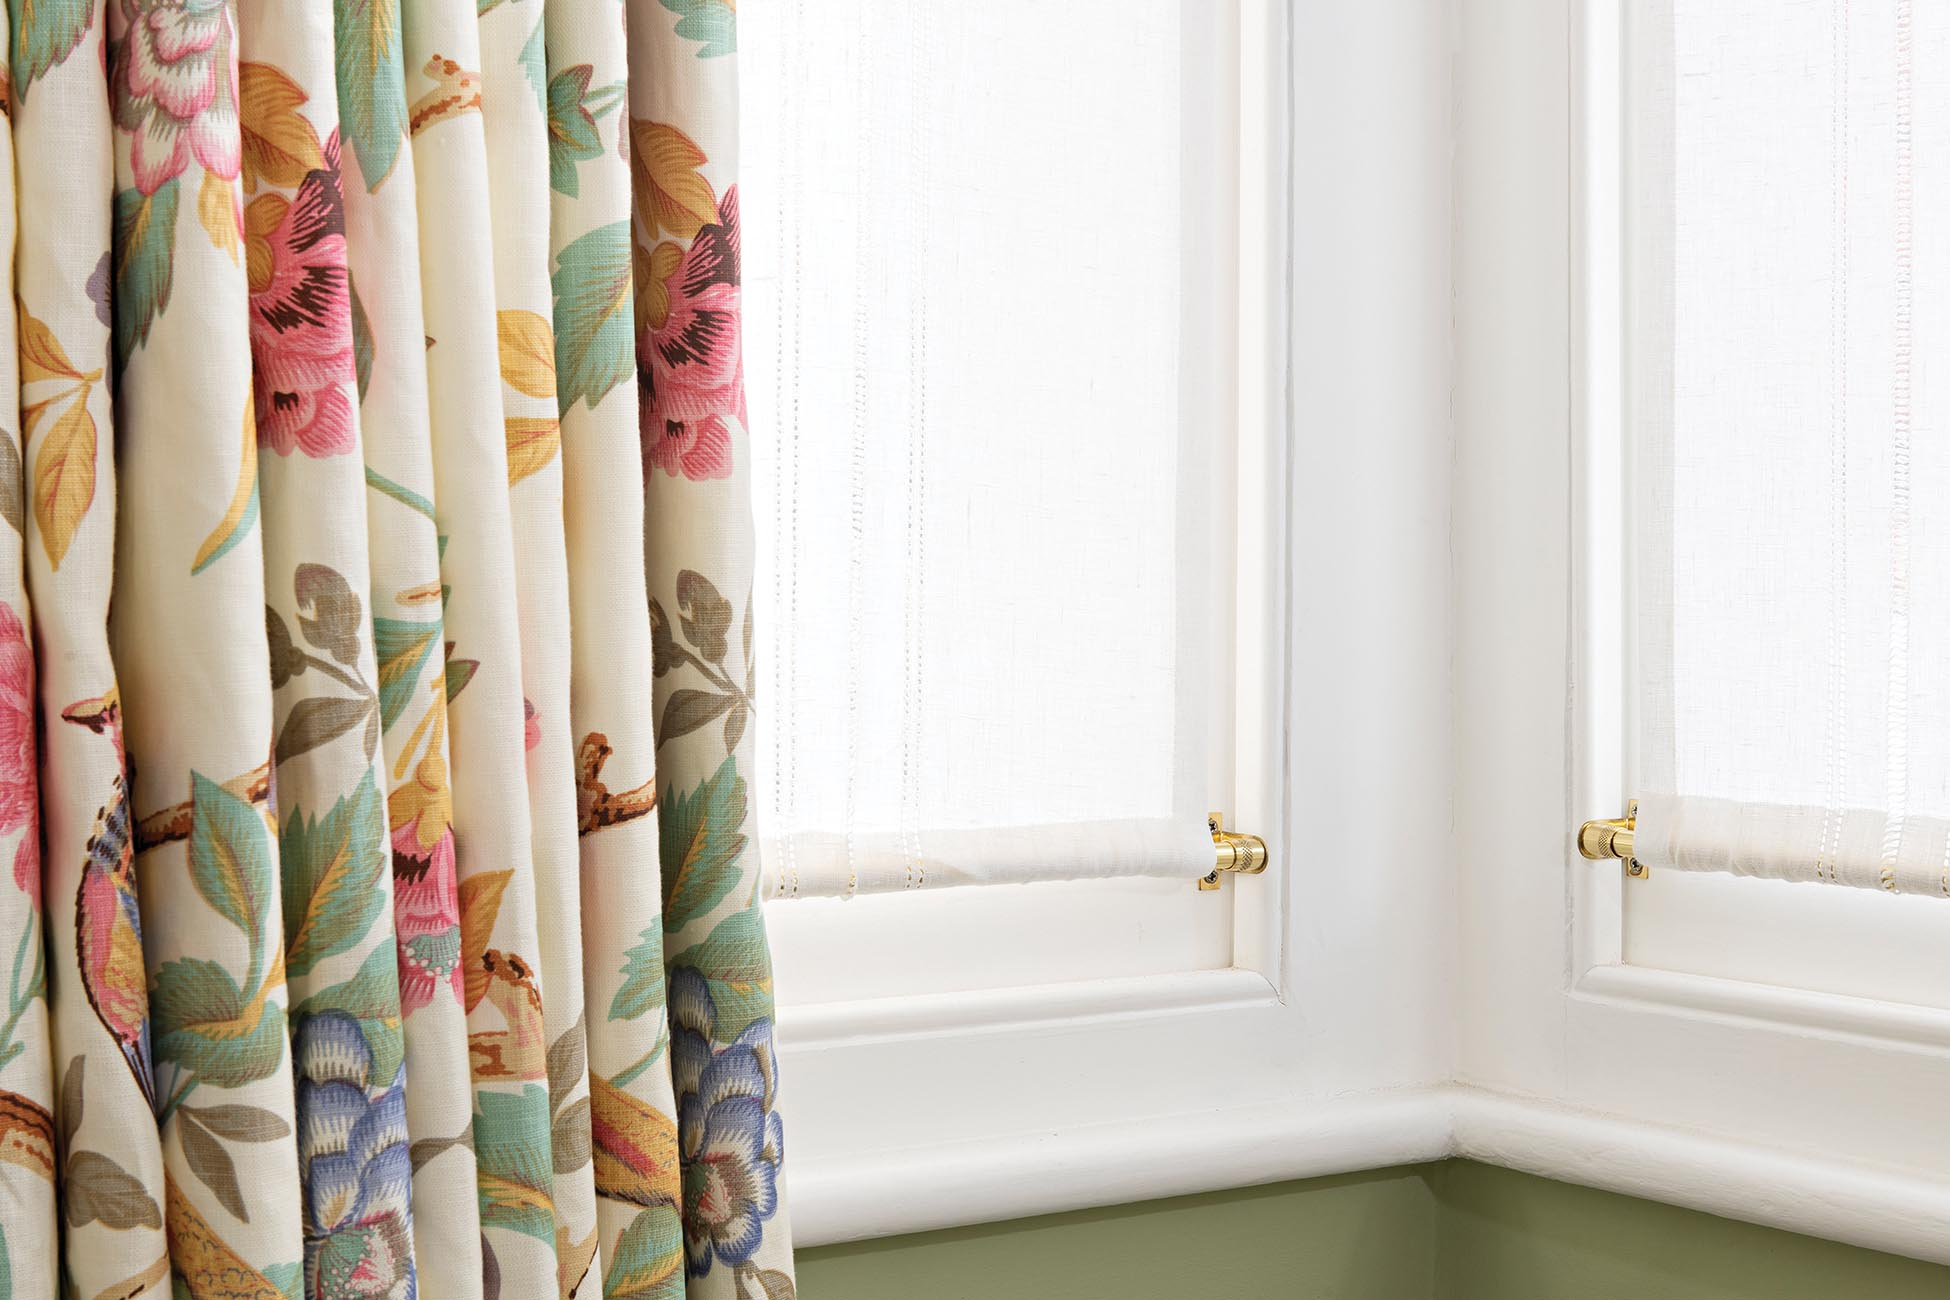 Soft Furnishings - Whether you're looking for window dressings, cushions or loose coverings, we work with a small number of excellent contractors who deliver outstanding handmade soft furnishings.